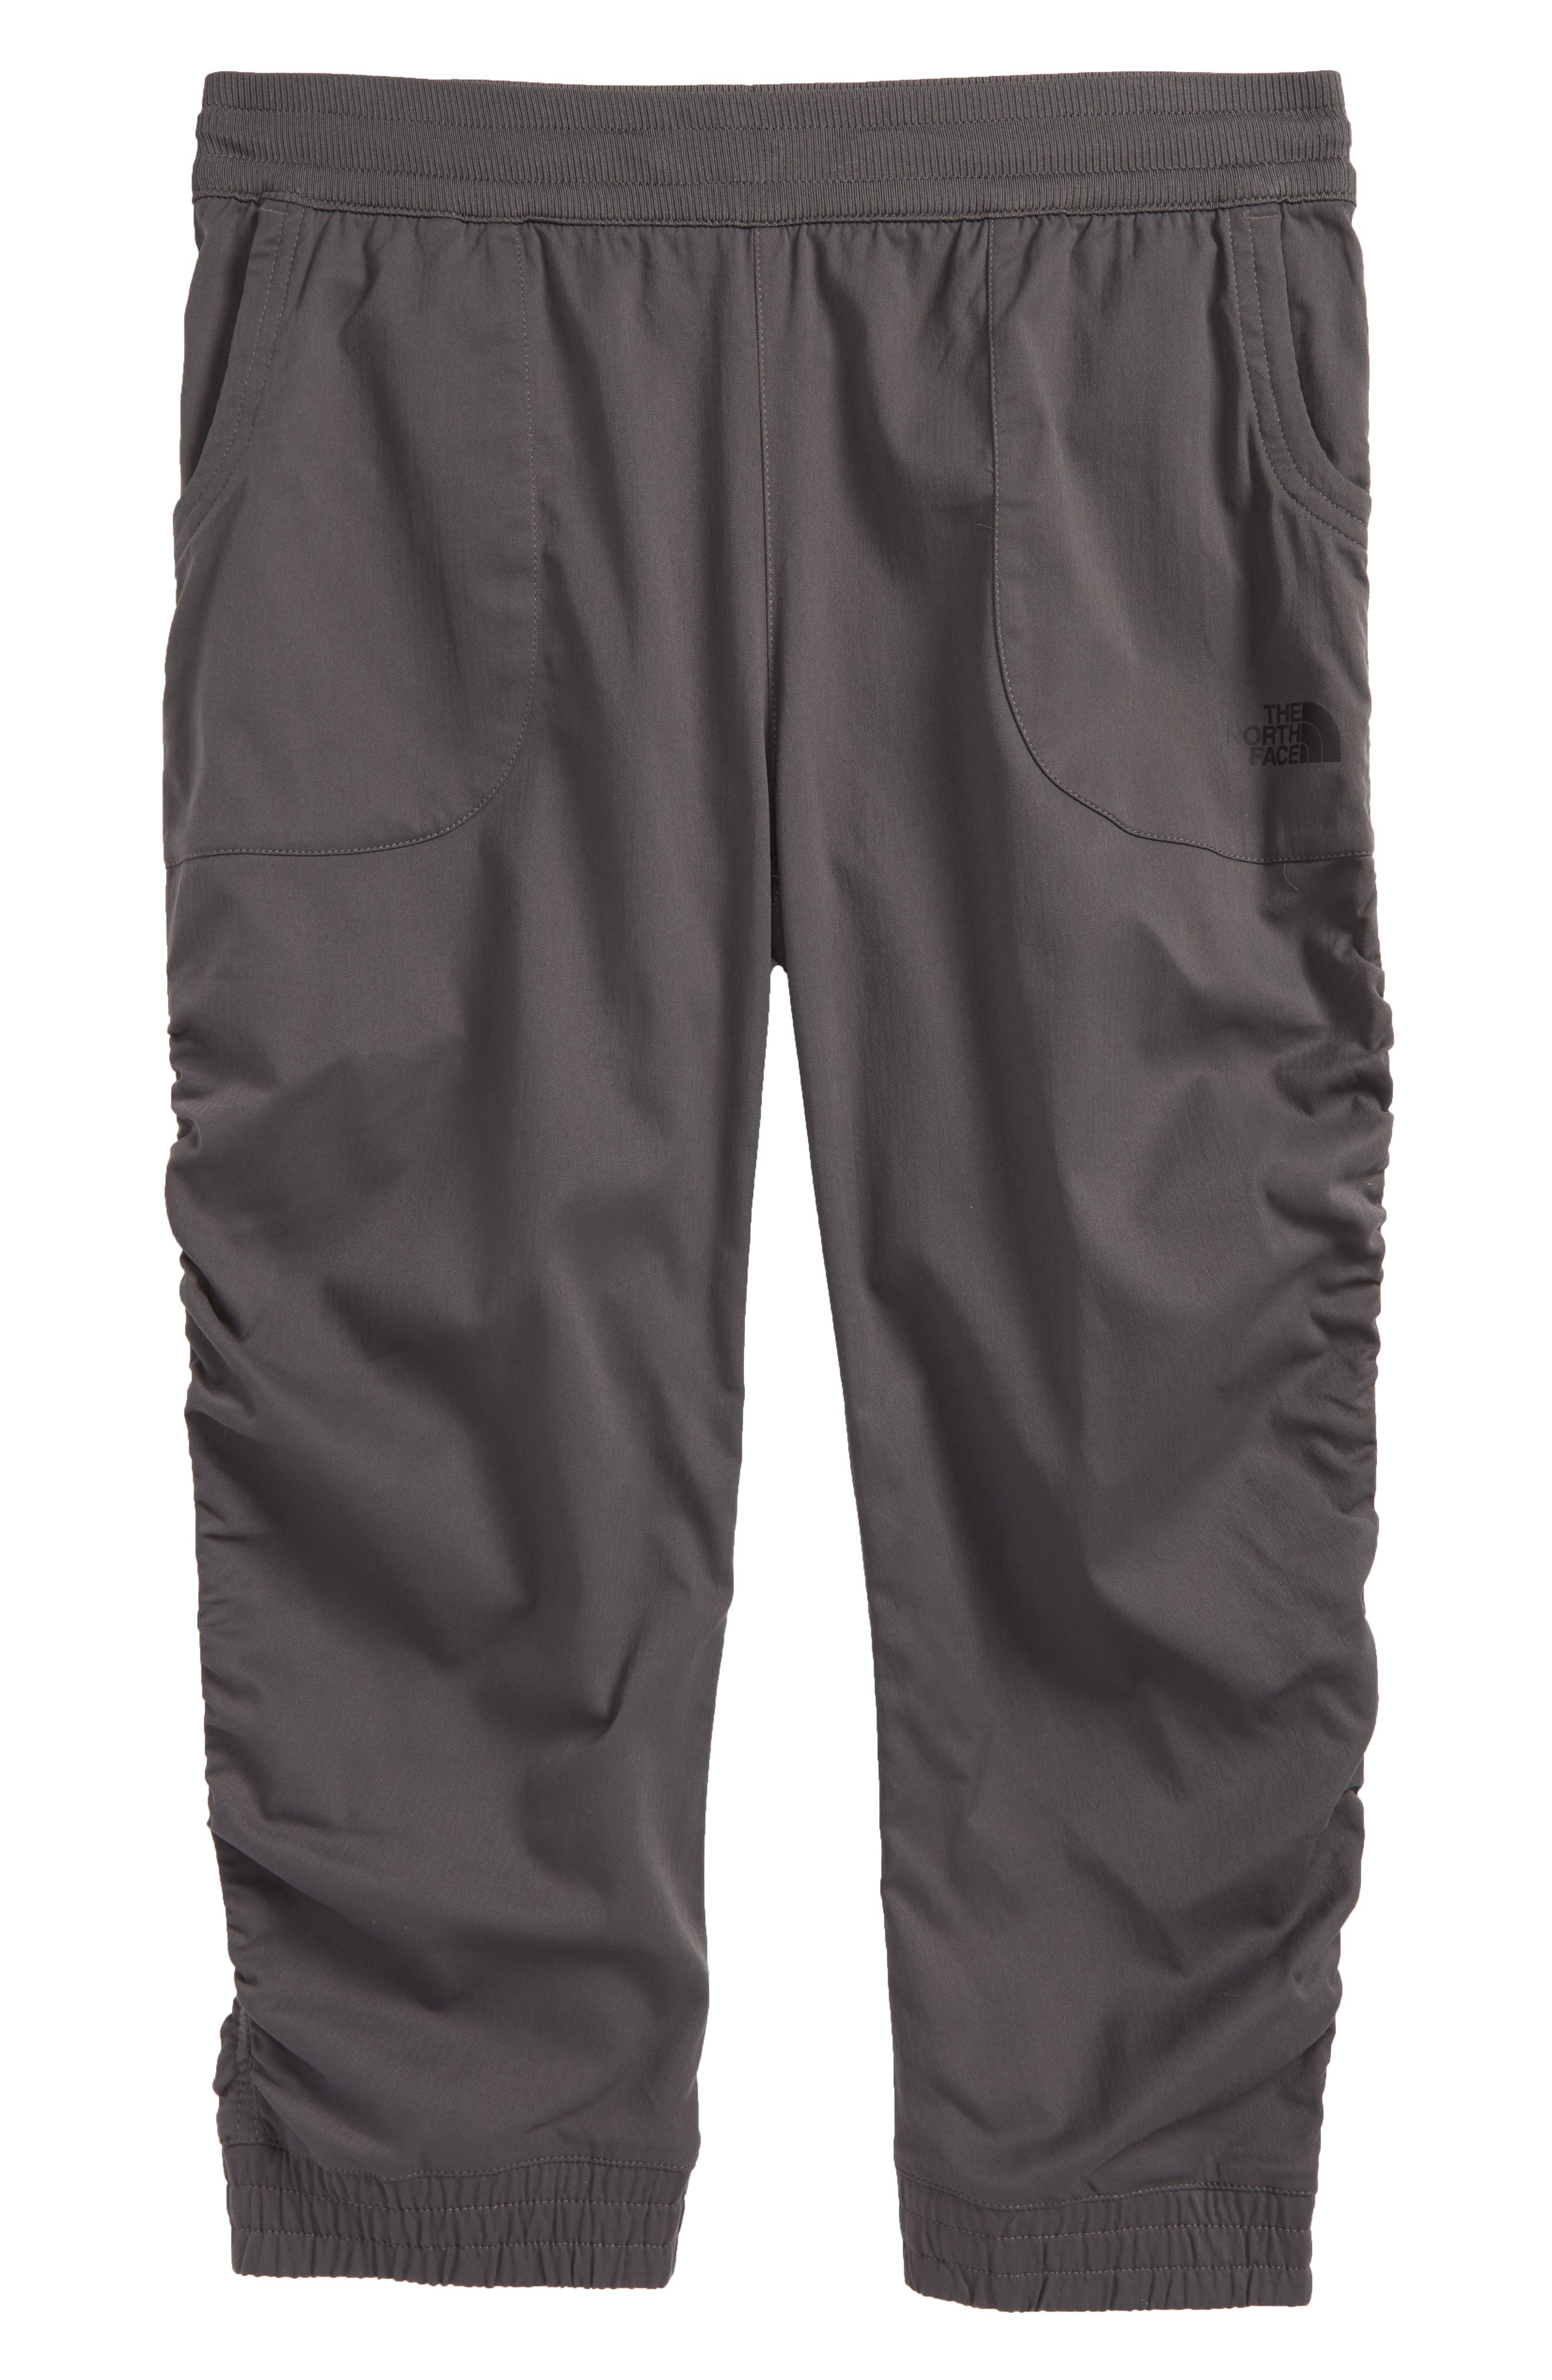 Aphrodite Pants,                             Main thumbnail 1, color,                             Graphite Grey